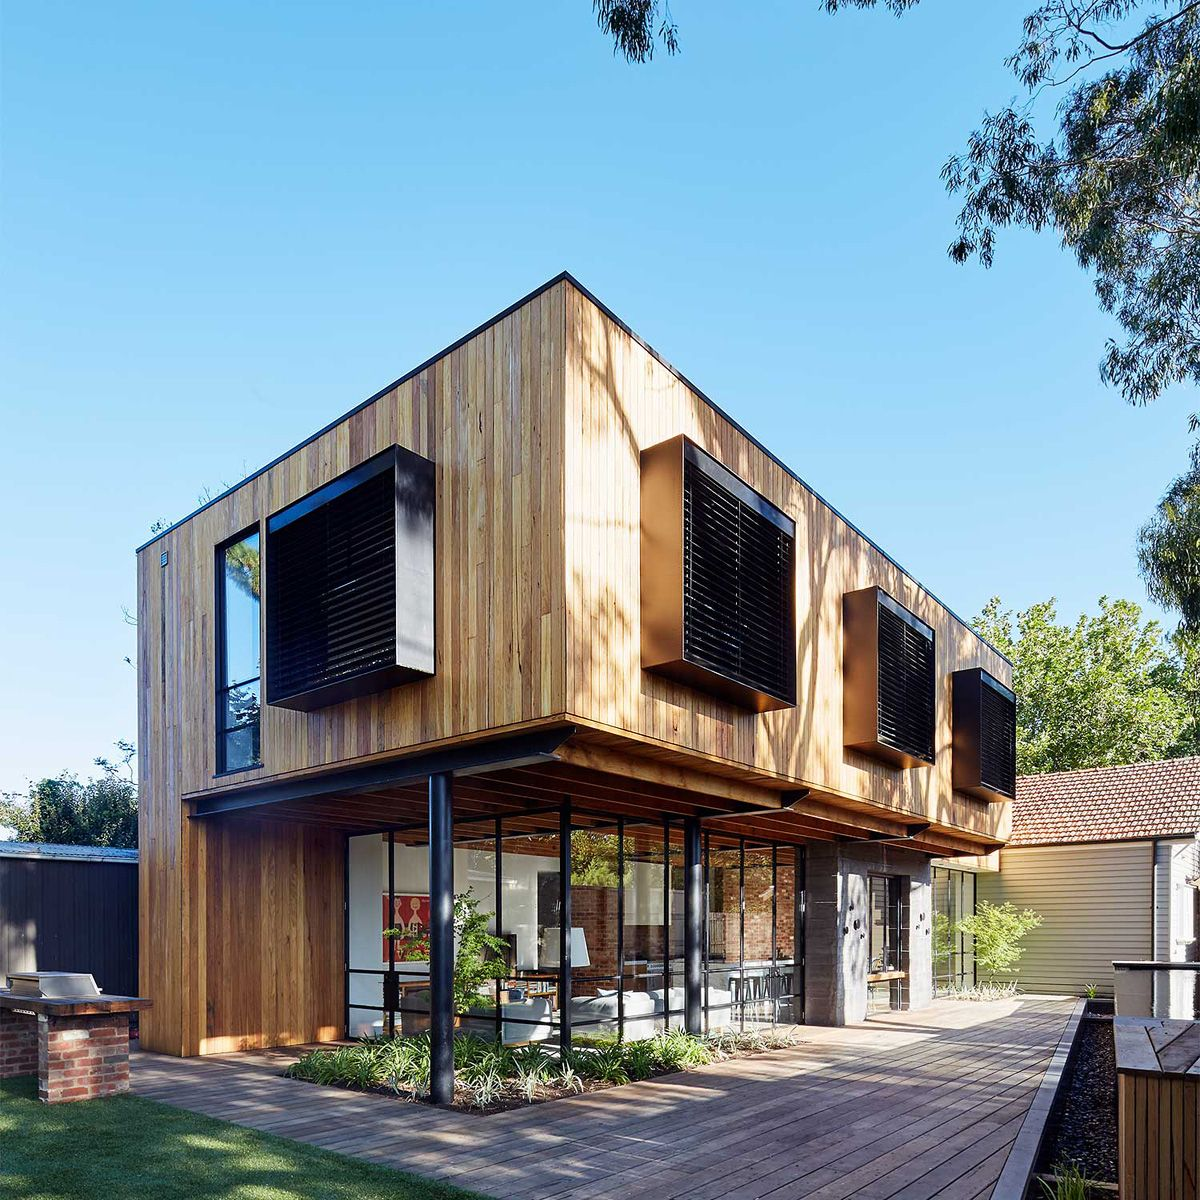 Wooden Houses Modern Wooden House Architecture House In The Woods